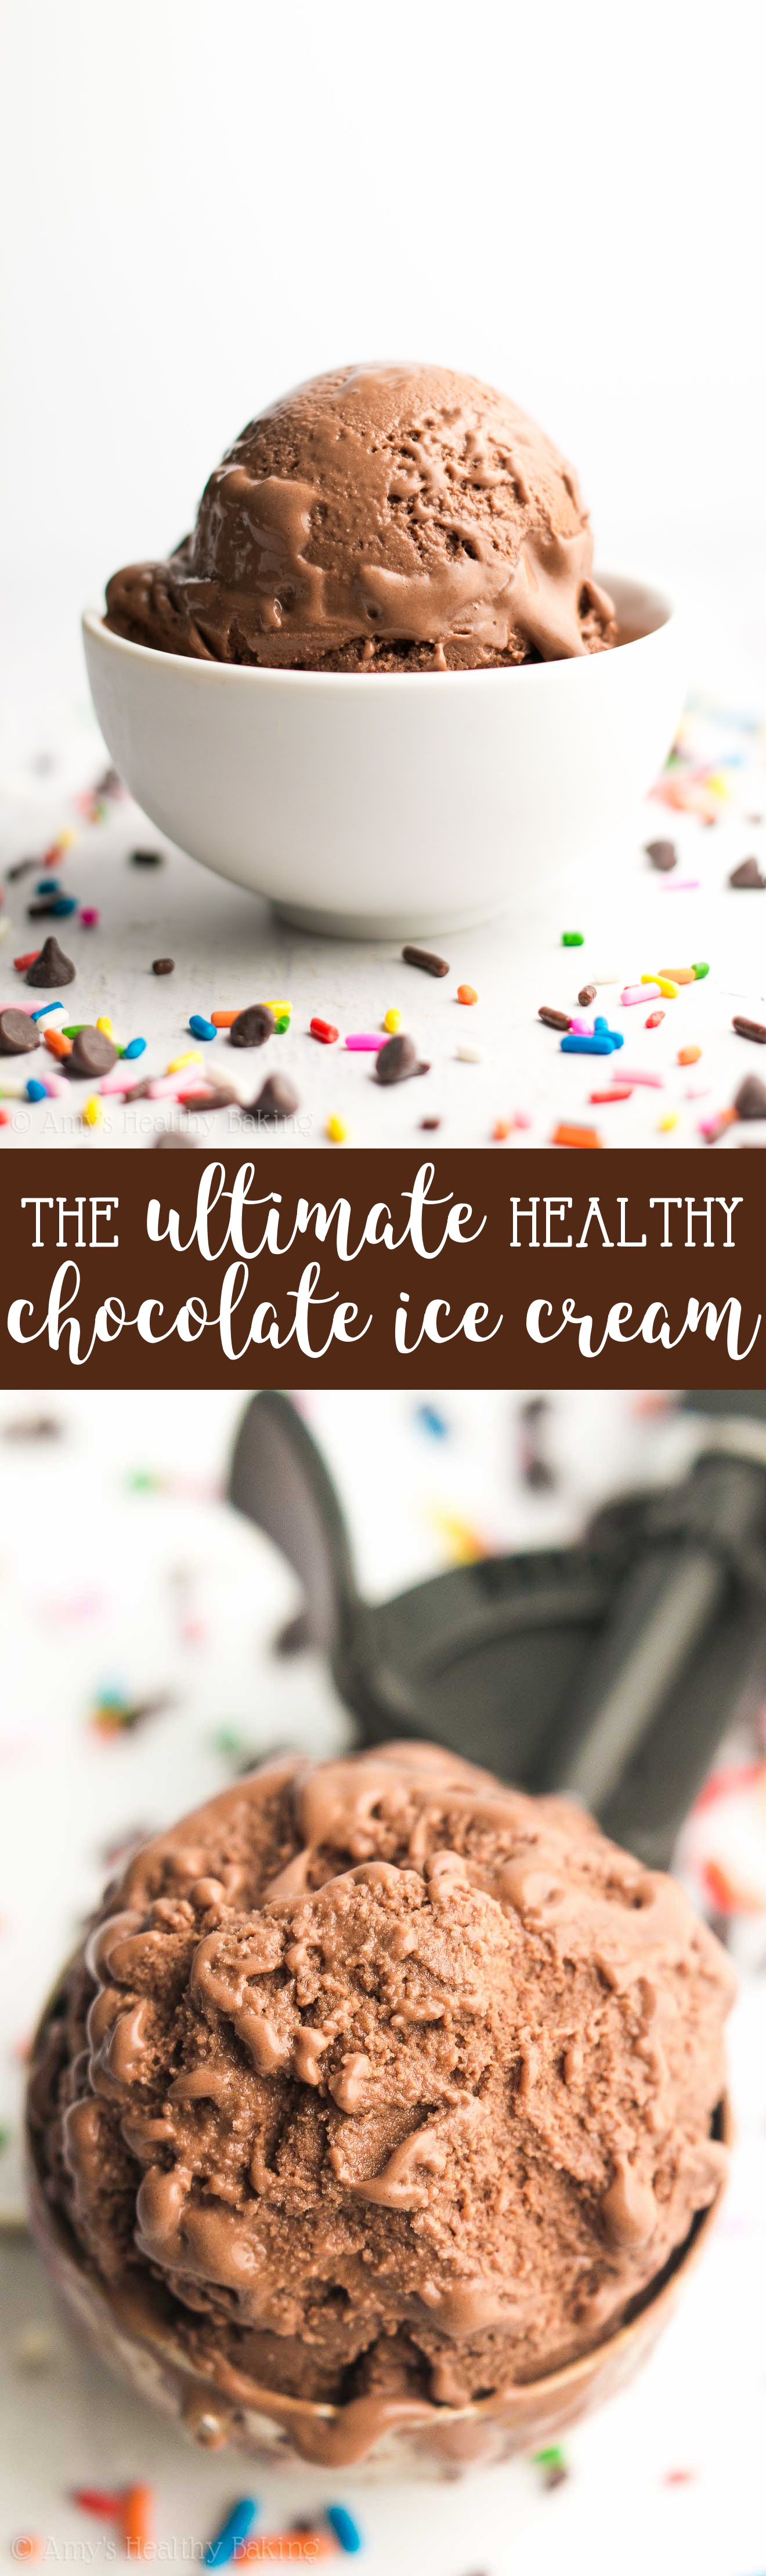 The ULTIMATE Healthy Chocolate Ice Cream -- just 85 calories! It tastes so rich & like it came from a fancy ice cream parlor, not healthy at all! SO easy to make & 8g+ of protein too!